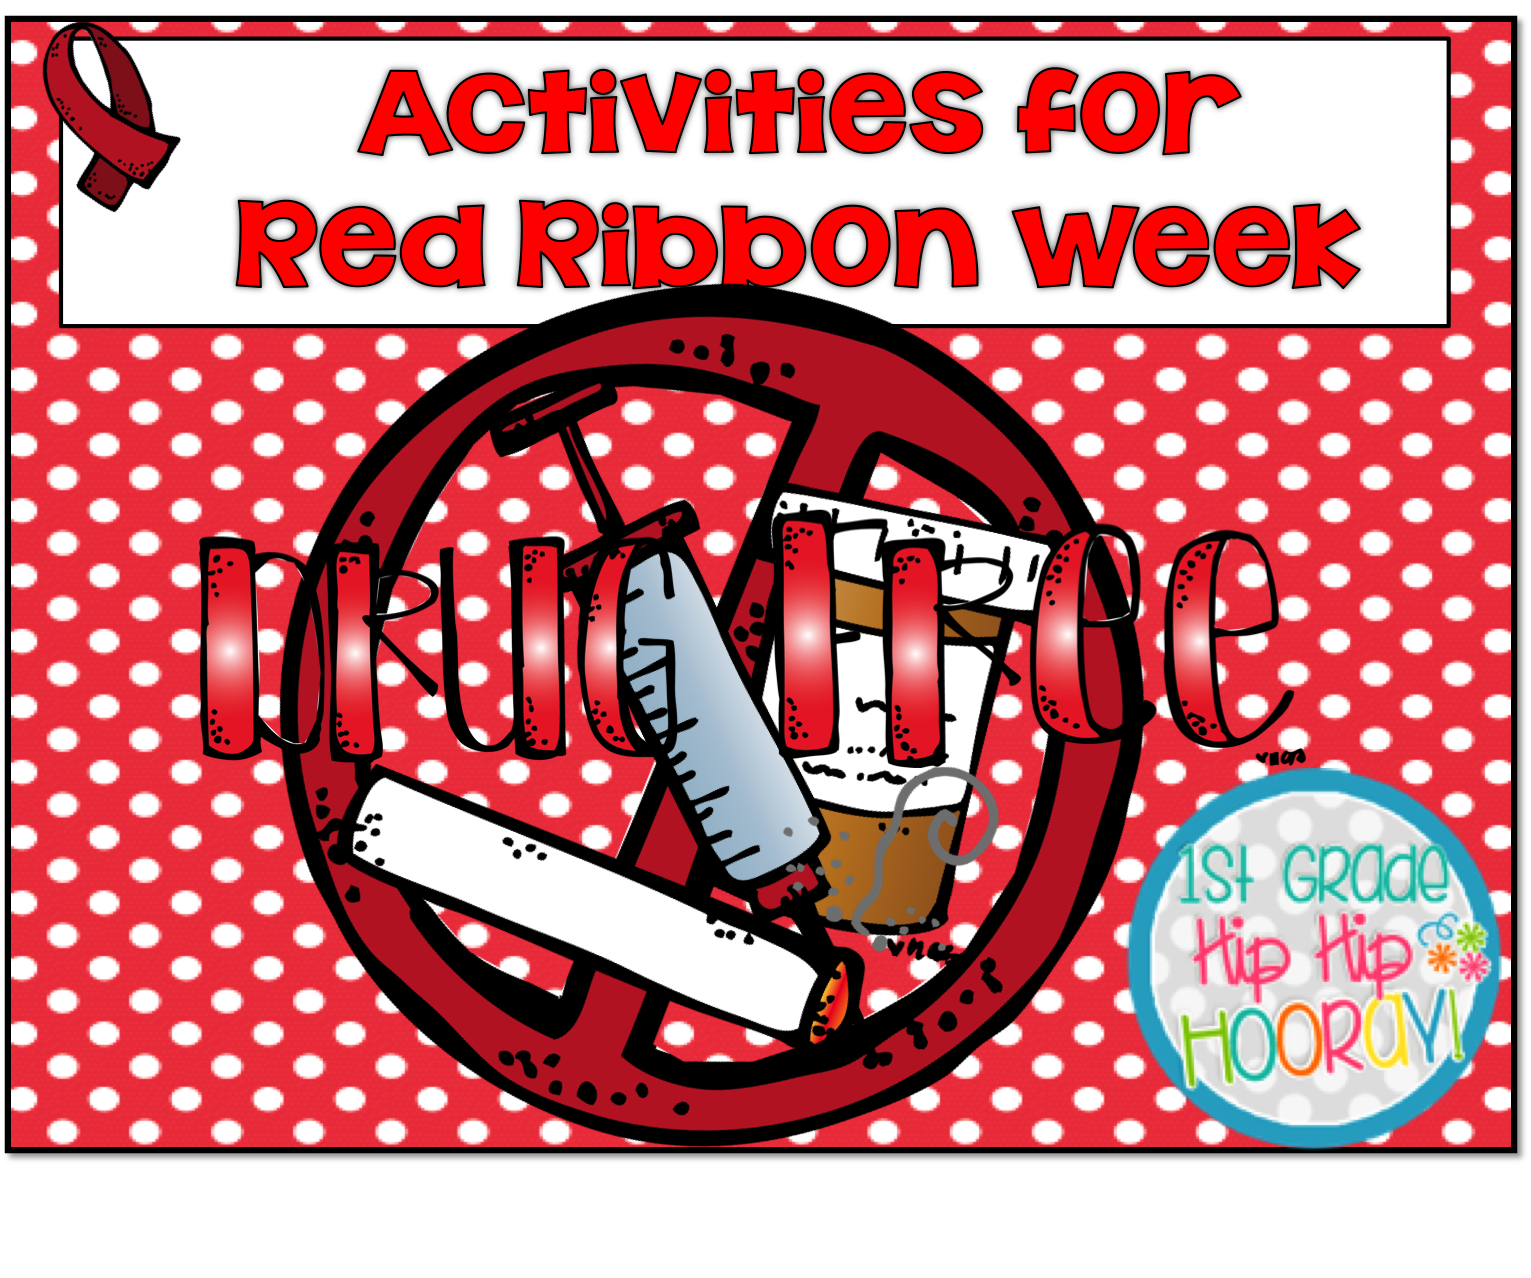 1st Grade Hip Hip Hooray Just Say No Red Ribbon Week Activities For Your Primary Class